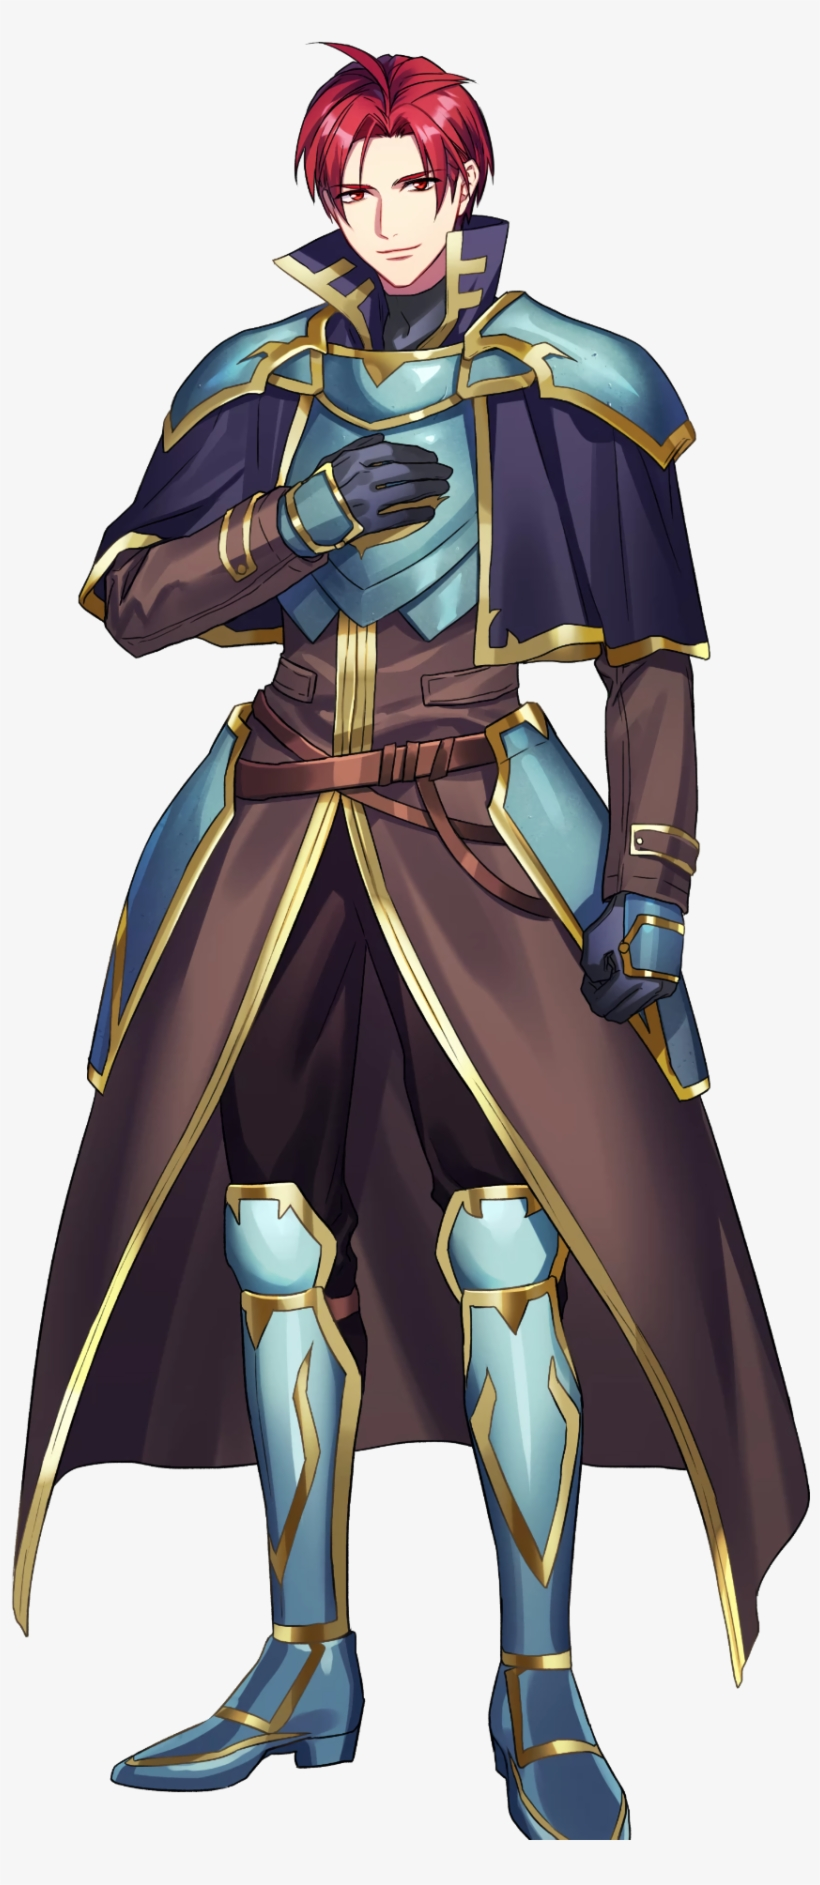 Character Reference Character Ideas Character Design Seth Fire Emblem Heroes Transparent Png 1600x1920 Free Download On Nicepng